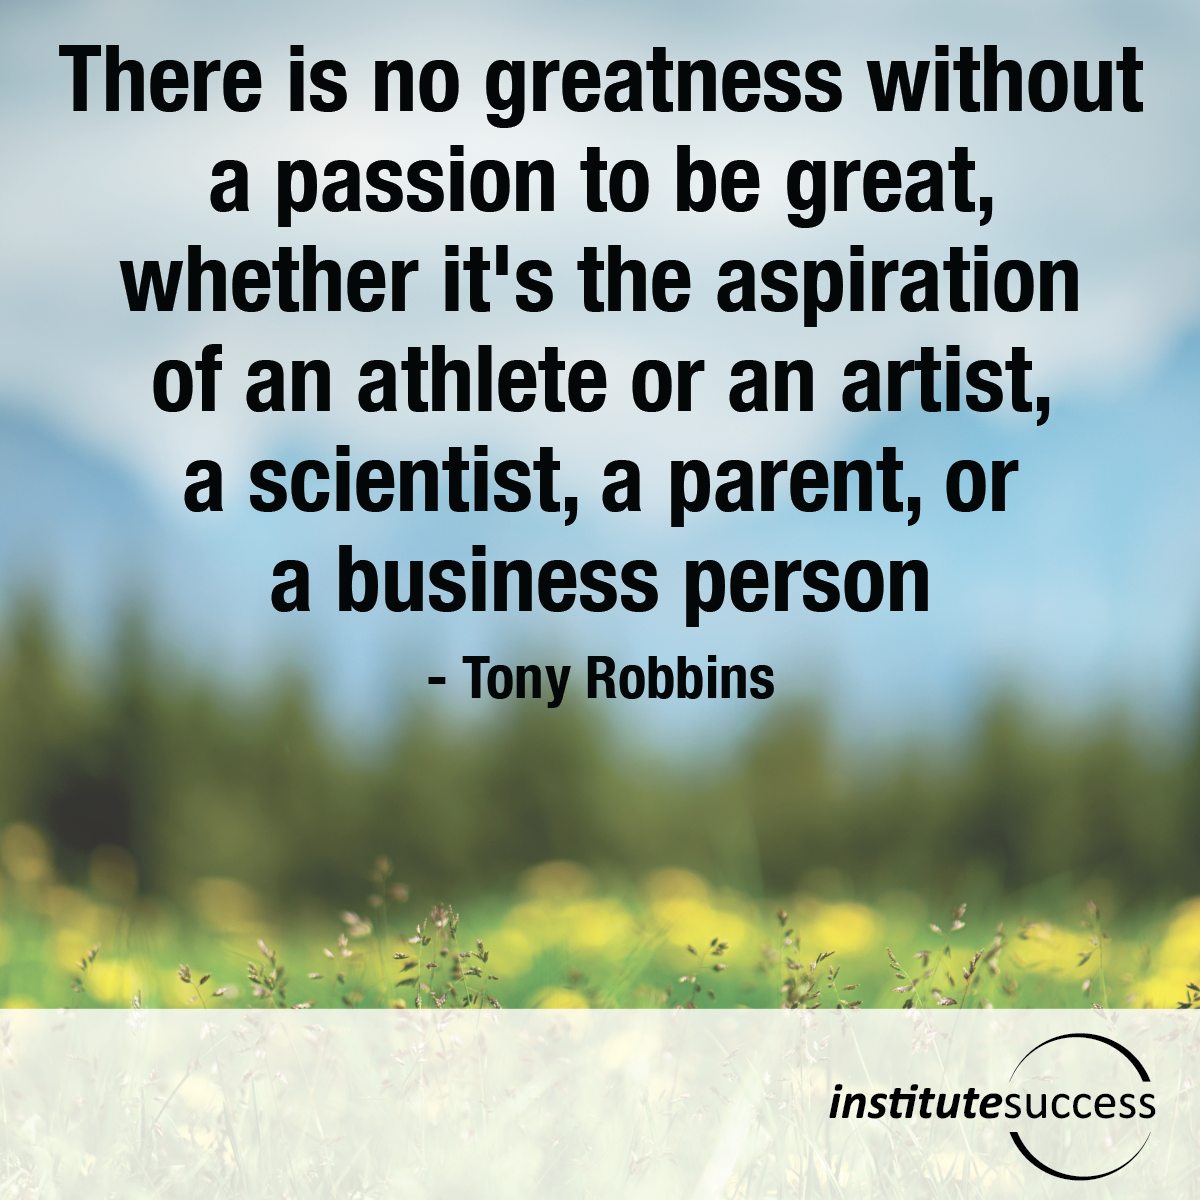 There is no greatness without a passion to be great, whether it's the aspiration of an athlete or an artist, a scientist, a parent, or a businessperson – Tony Robbins